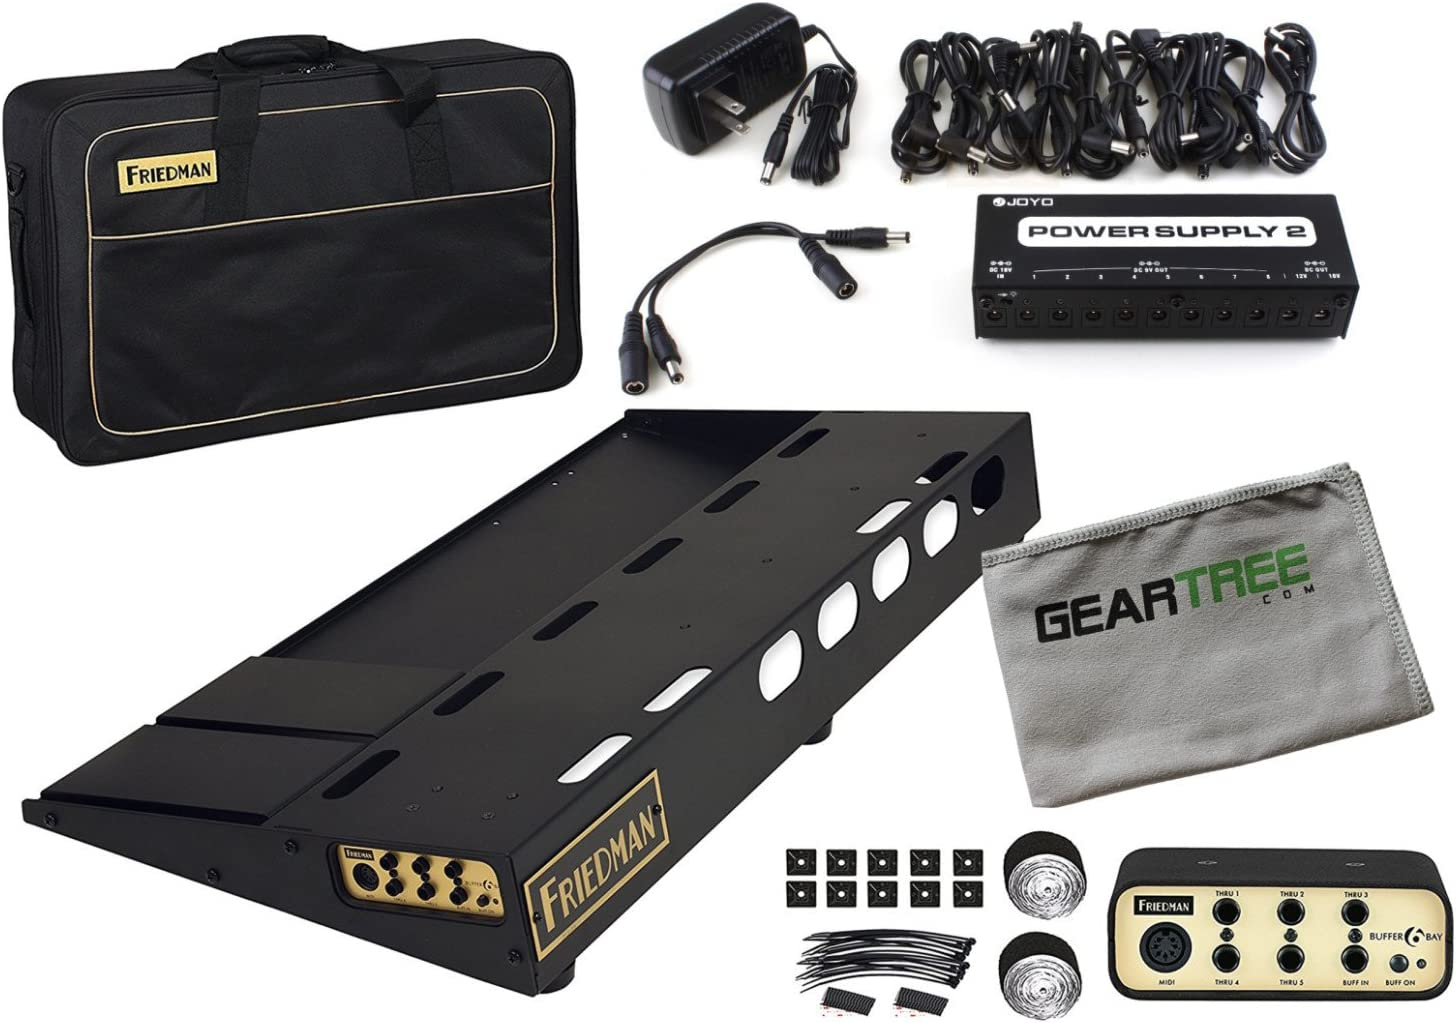 Friedman Tour Pro 1530 15'' x 30'' Pedal Board with Buffer Bay, Bag, Accessories